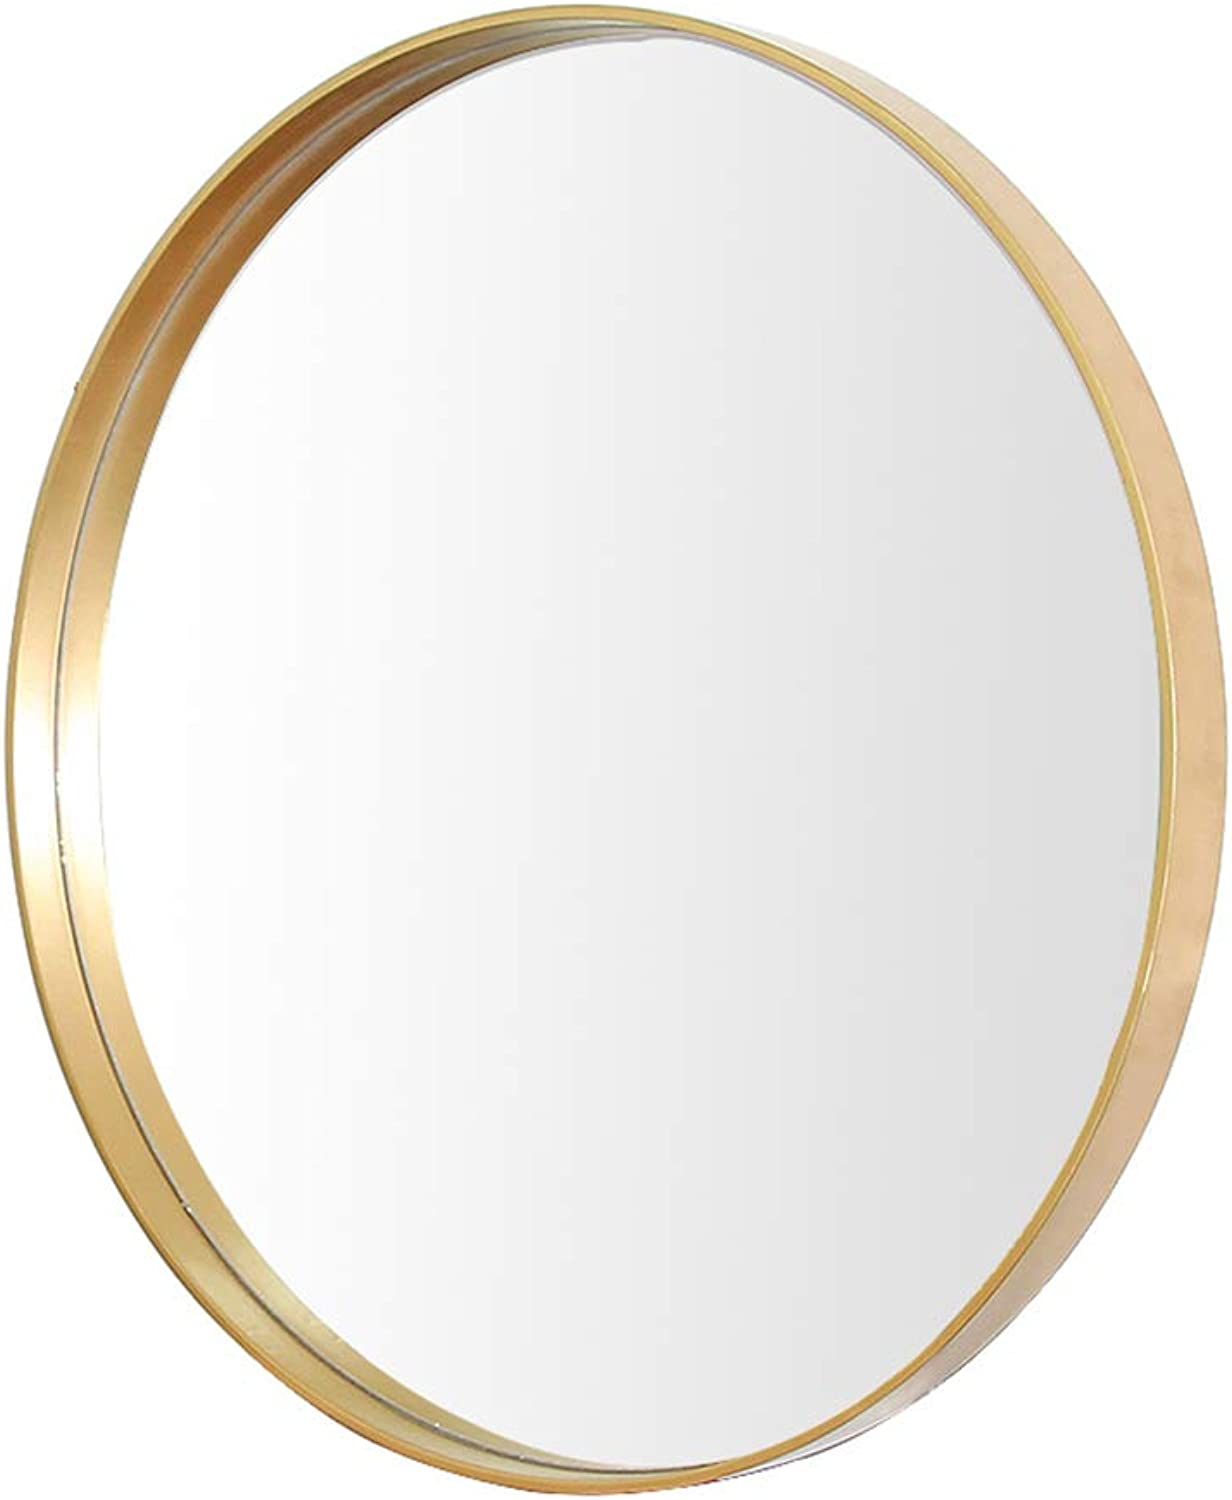 Wall-Mounted Mirrors Mirror Wall Hanging Mirror Silver Glass Mirror Make-up Mirror Bathroom Mirror